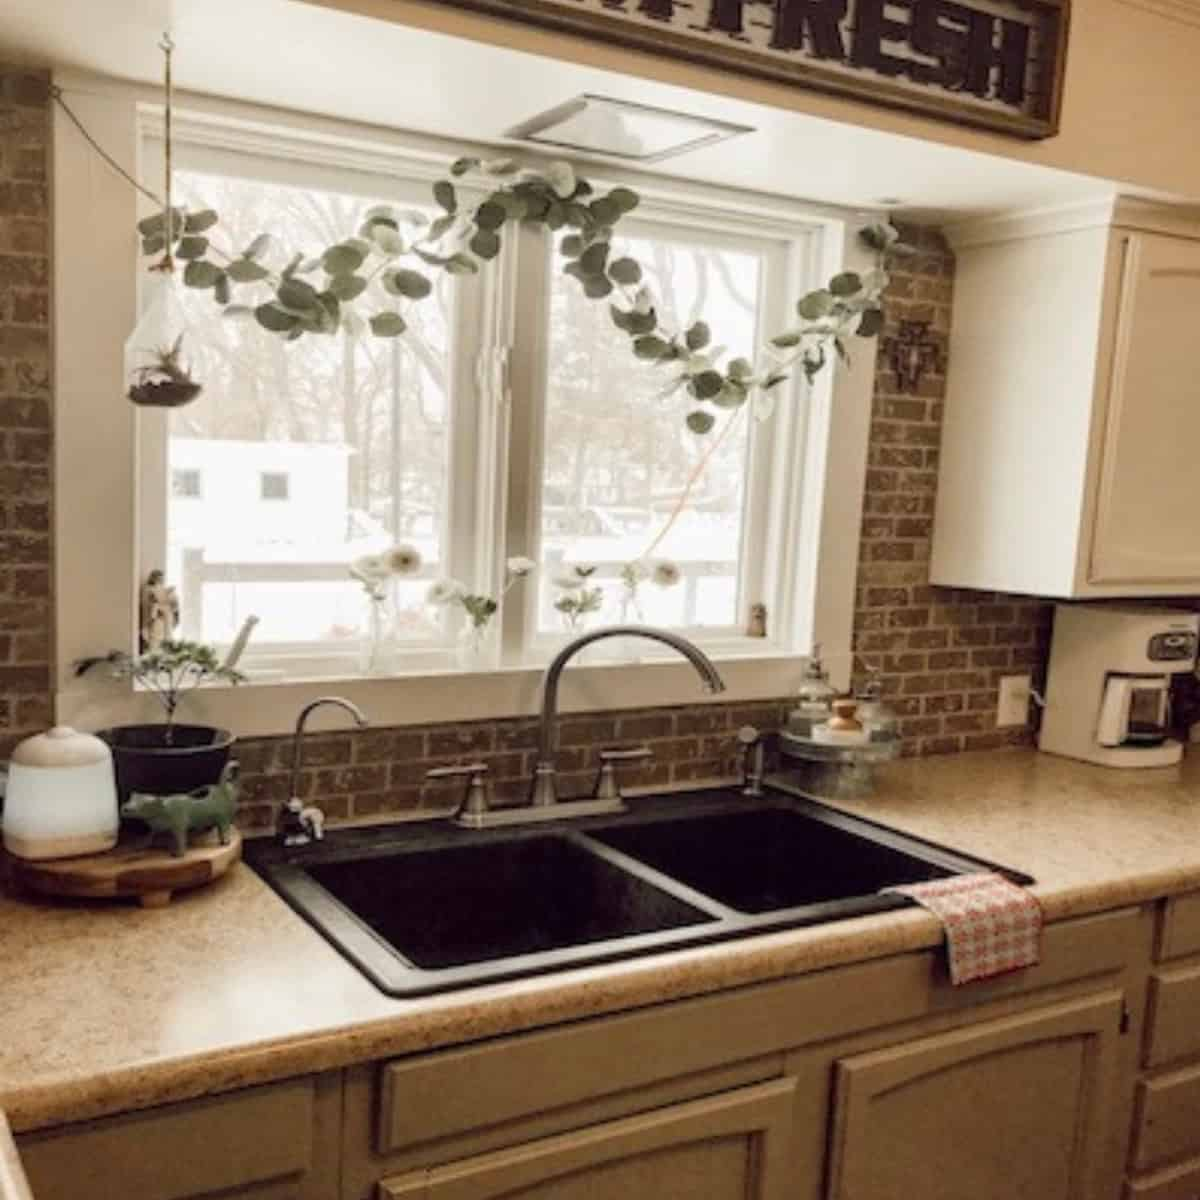 kitchen sink view with window above